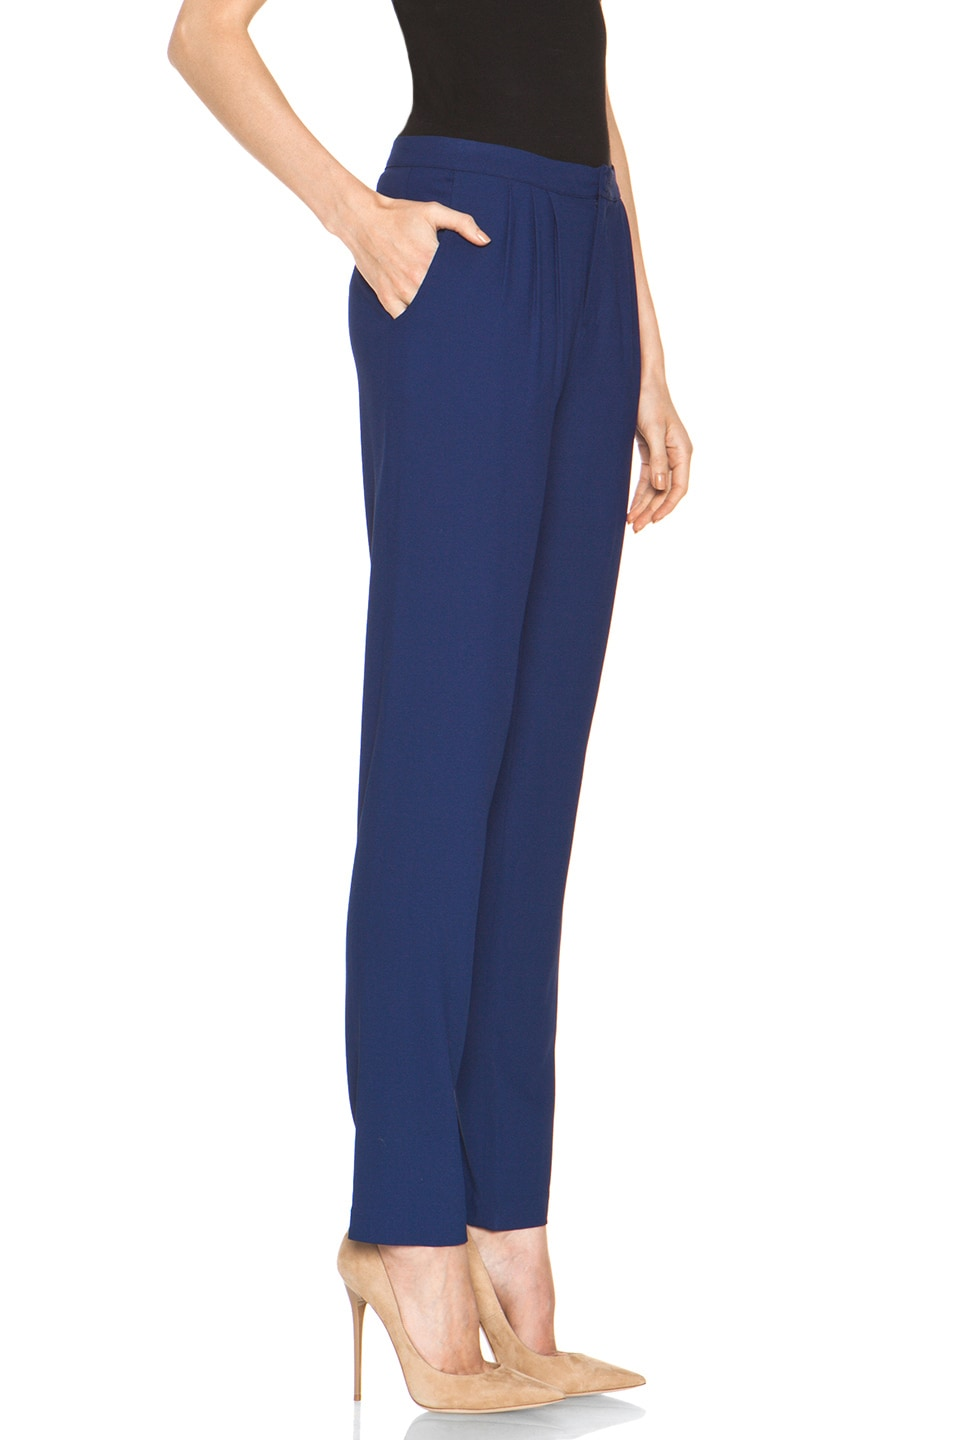 Image 3 of Girl. by Band of Outsiders Ami Pant in Twilight Blue